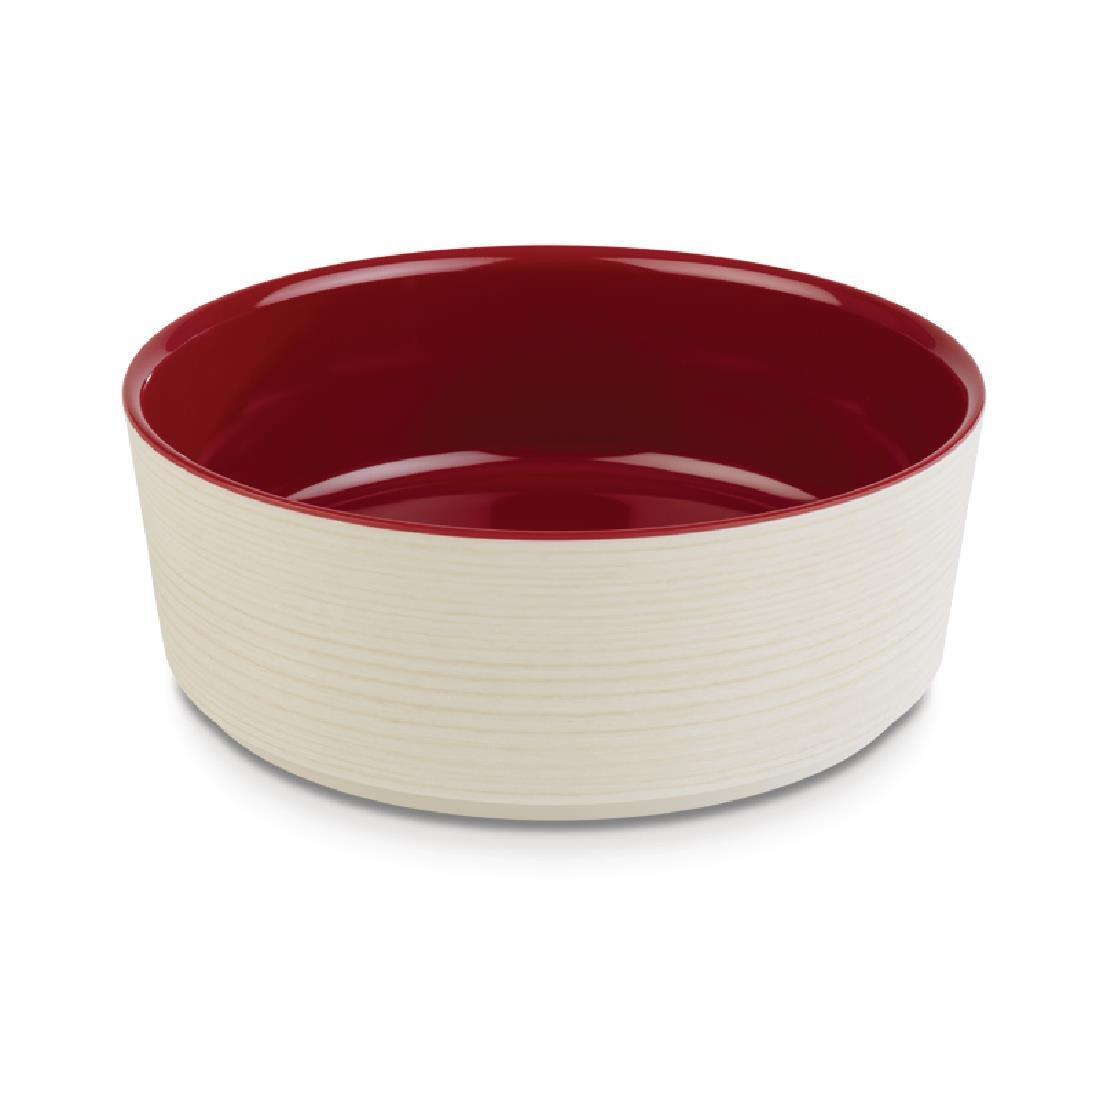 APS+ Melamine Round Bowl Maple and Red 1.5 Ltr - Each - DE567